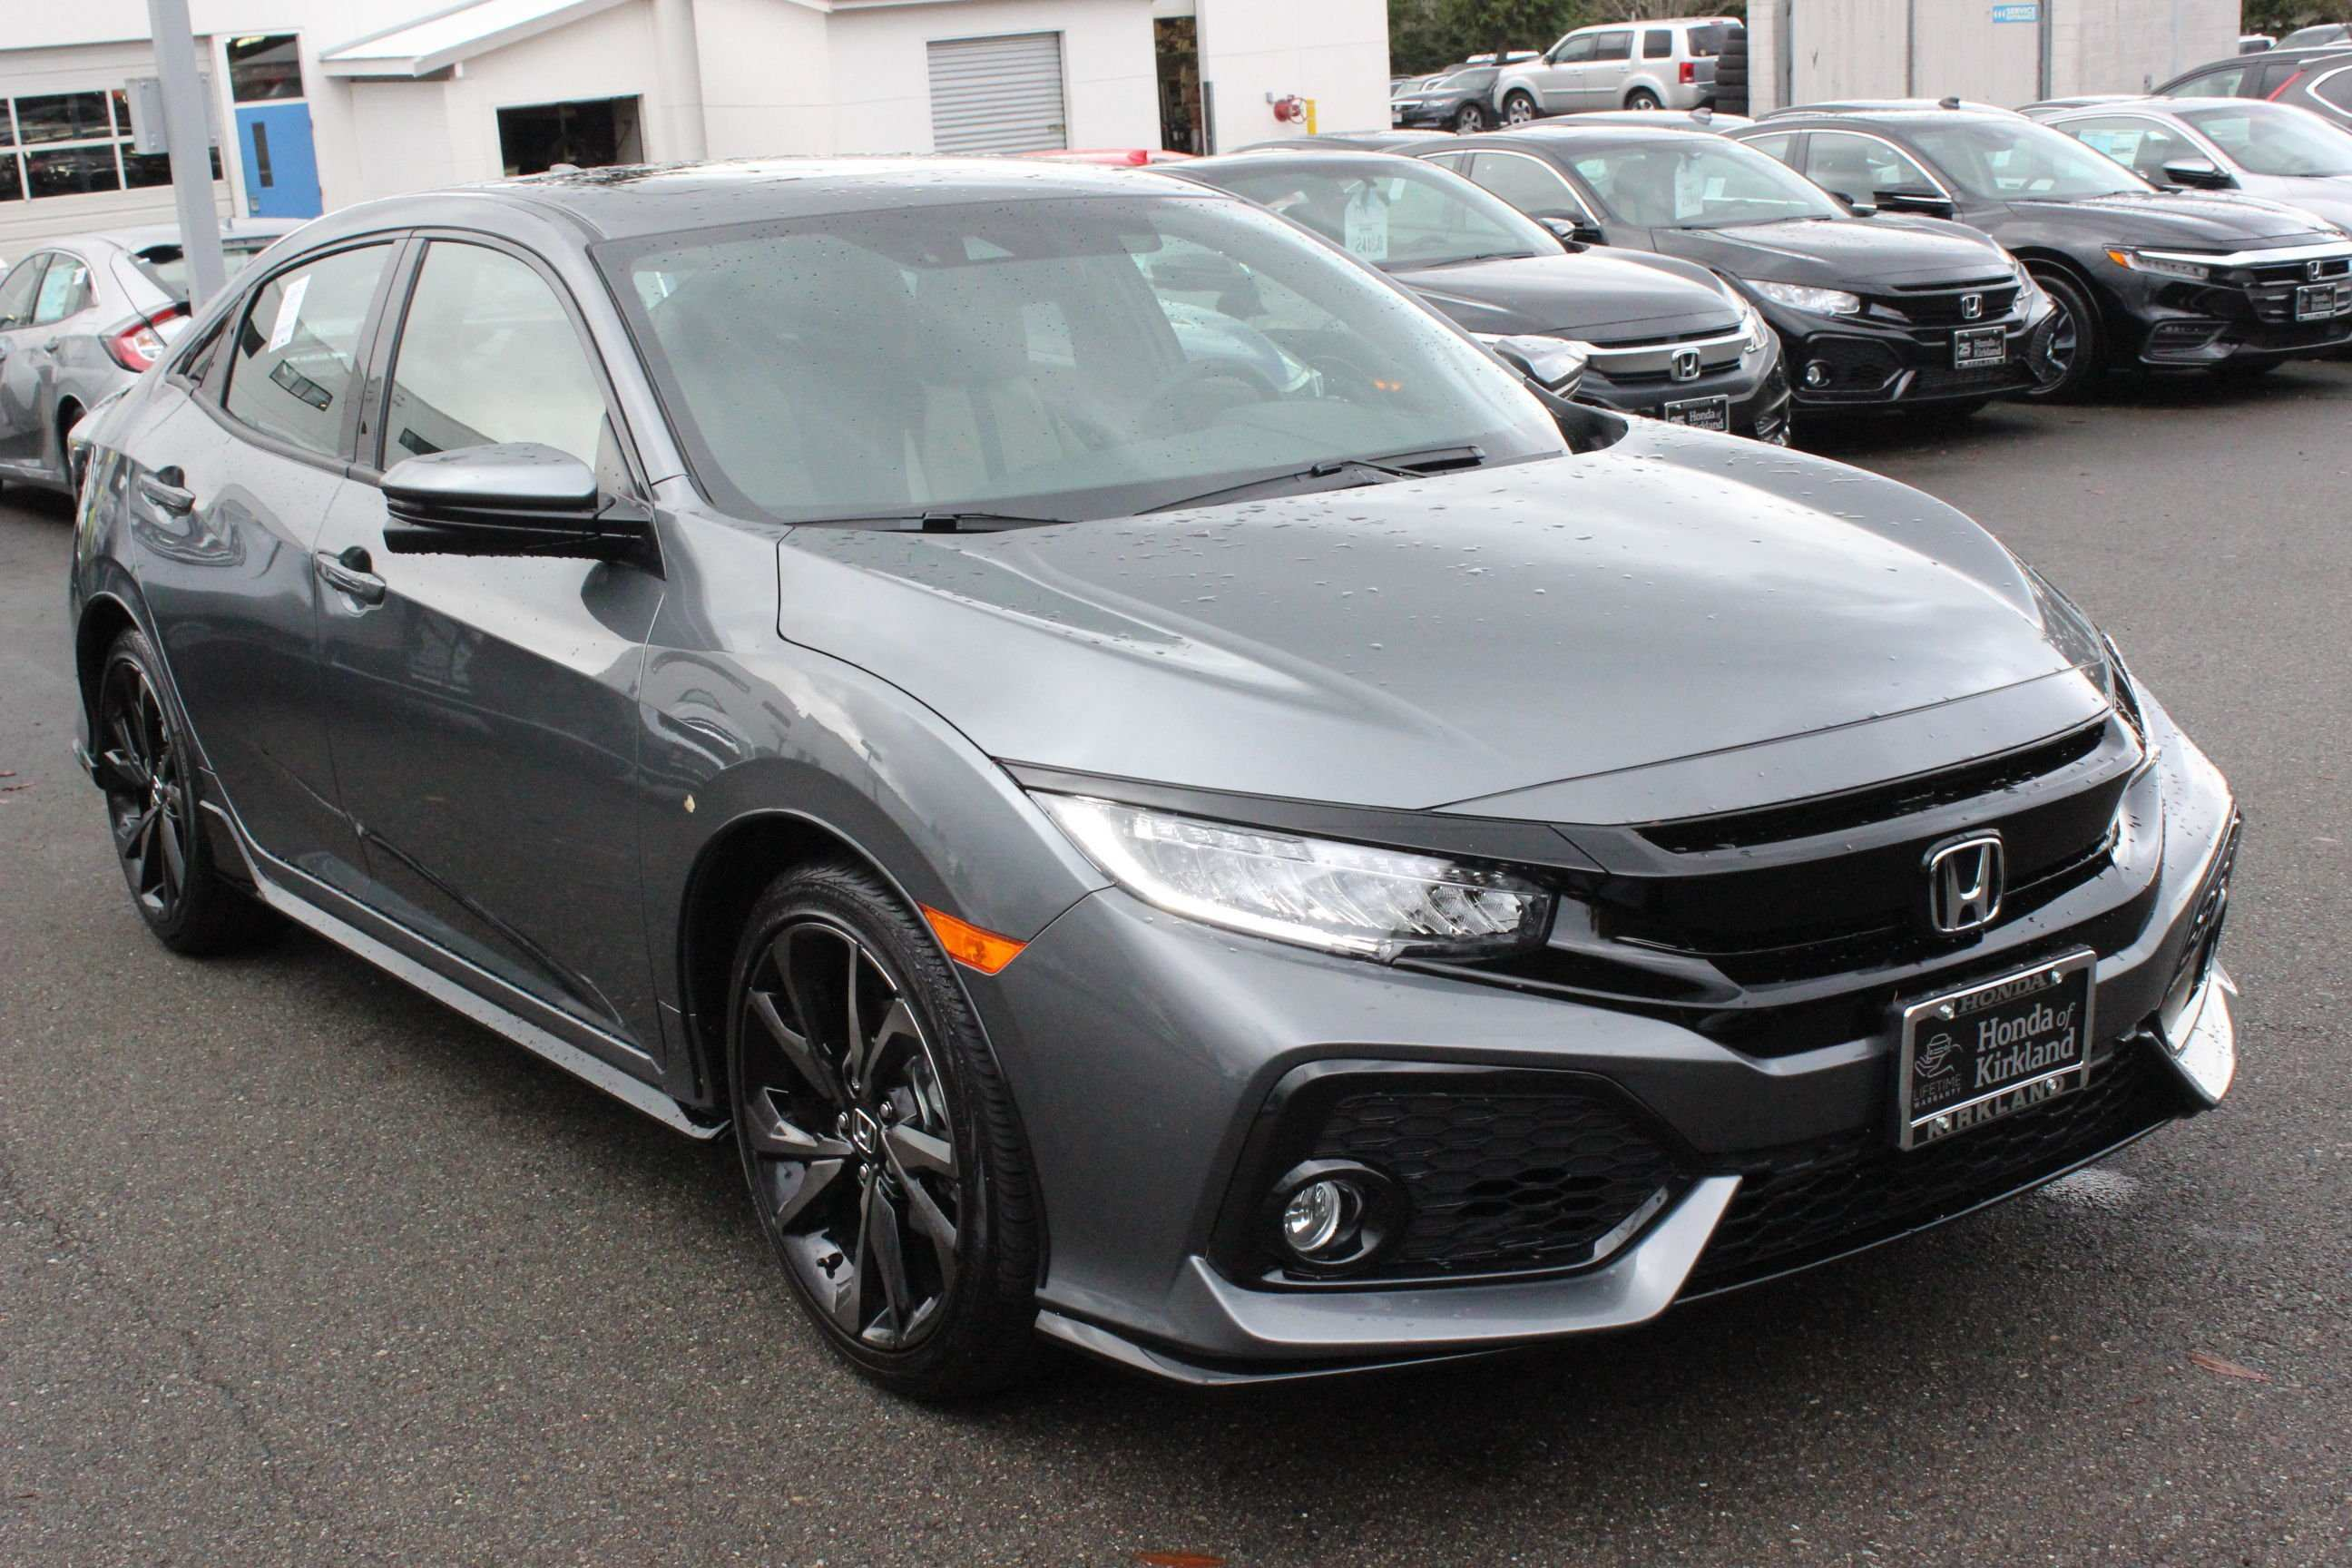 37 Best 2019 Honda Civic New Review